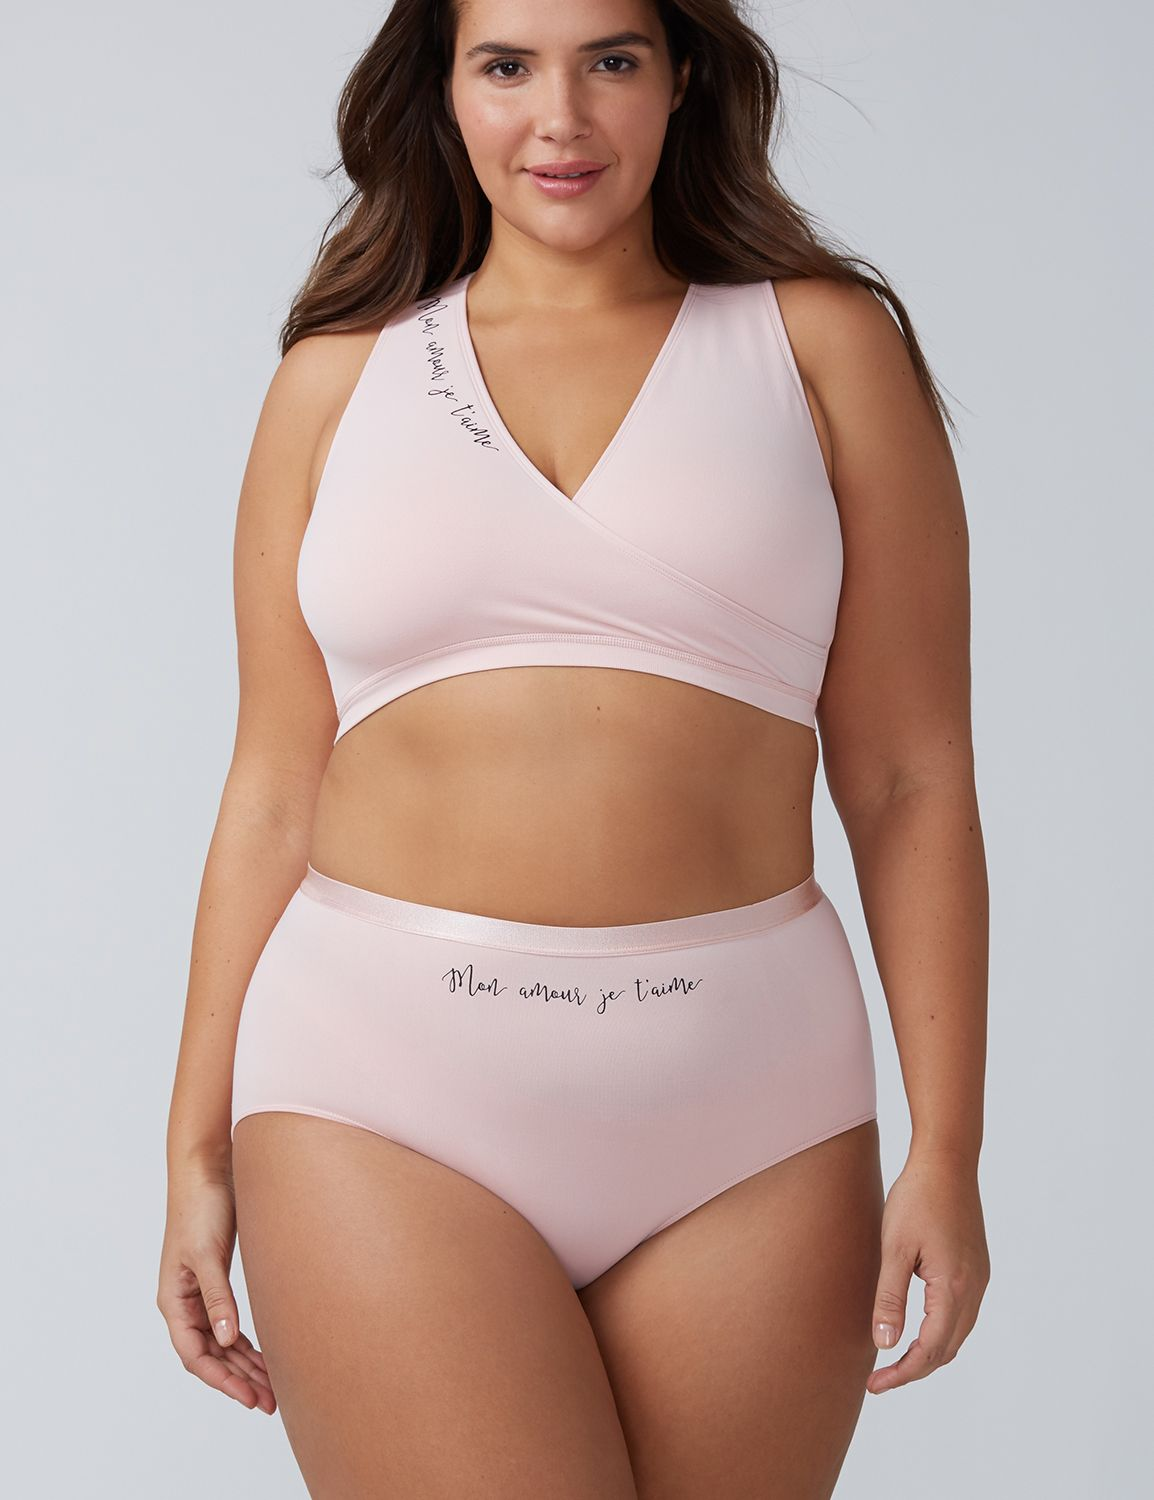 cacique panties | plus size panties and underwear | lane bryant